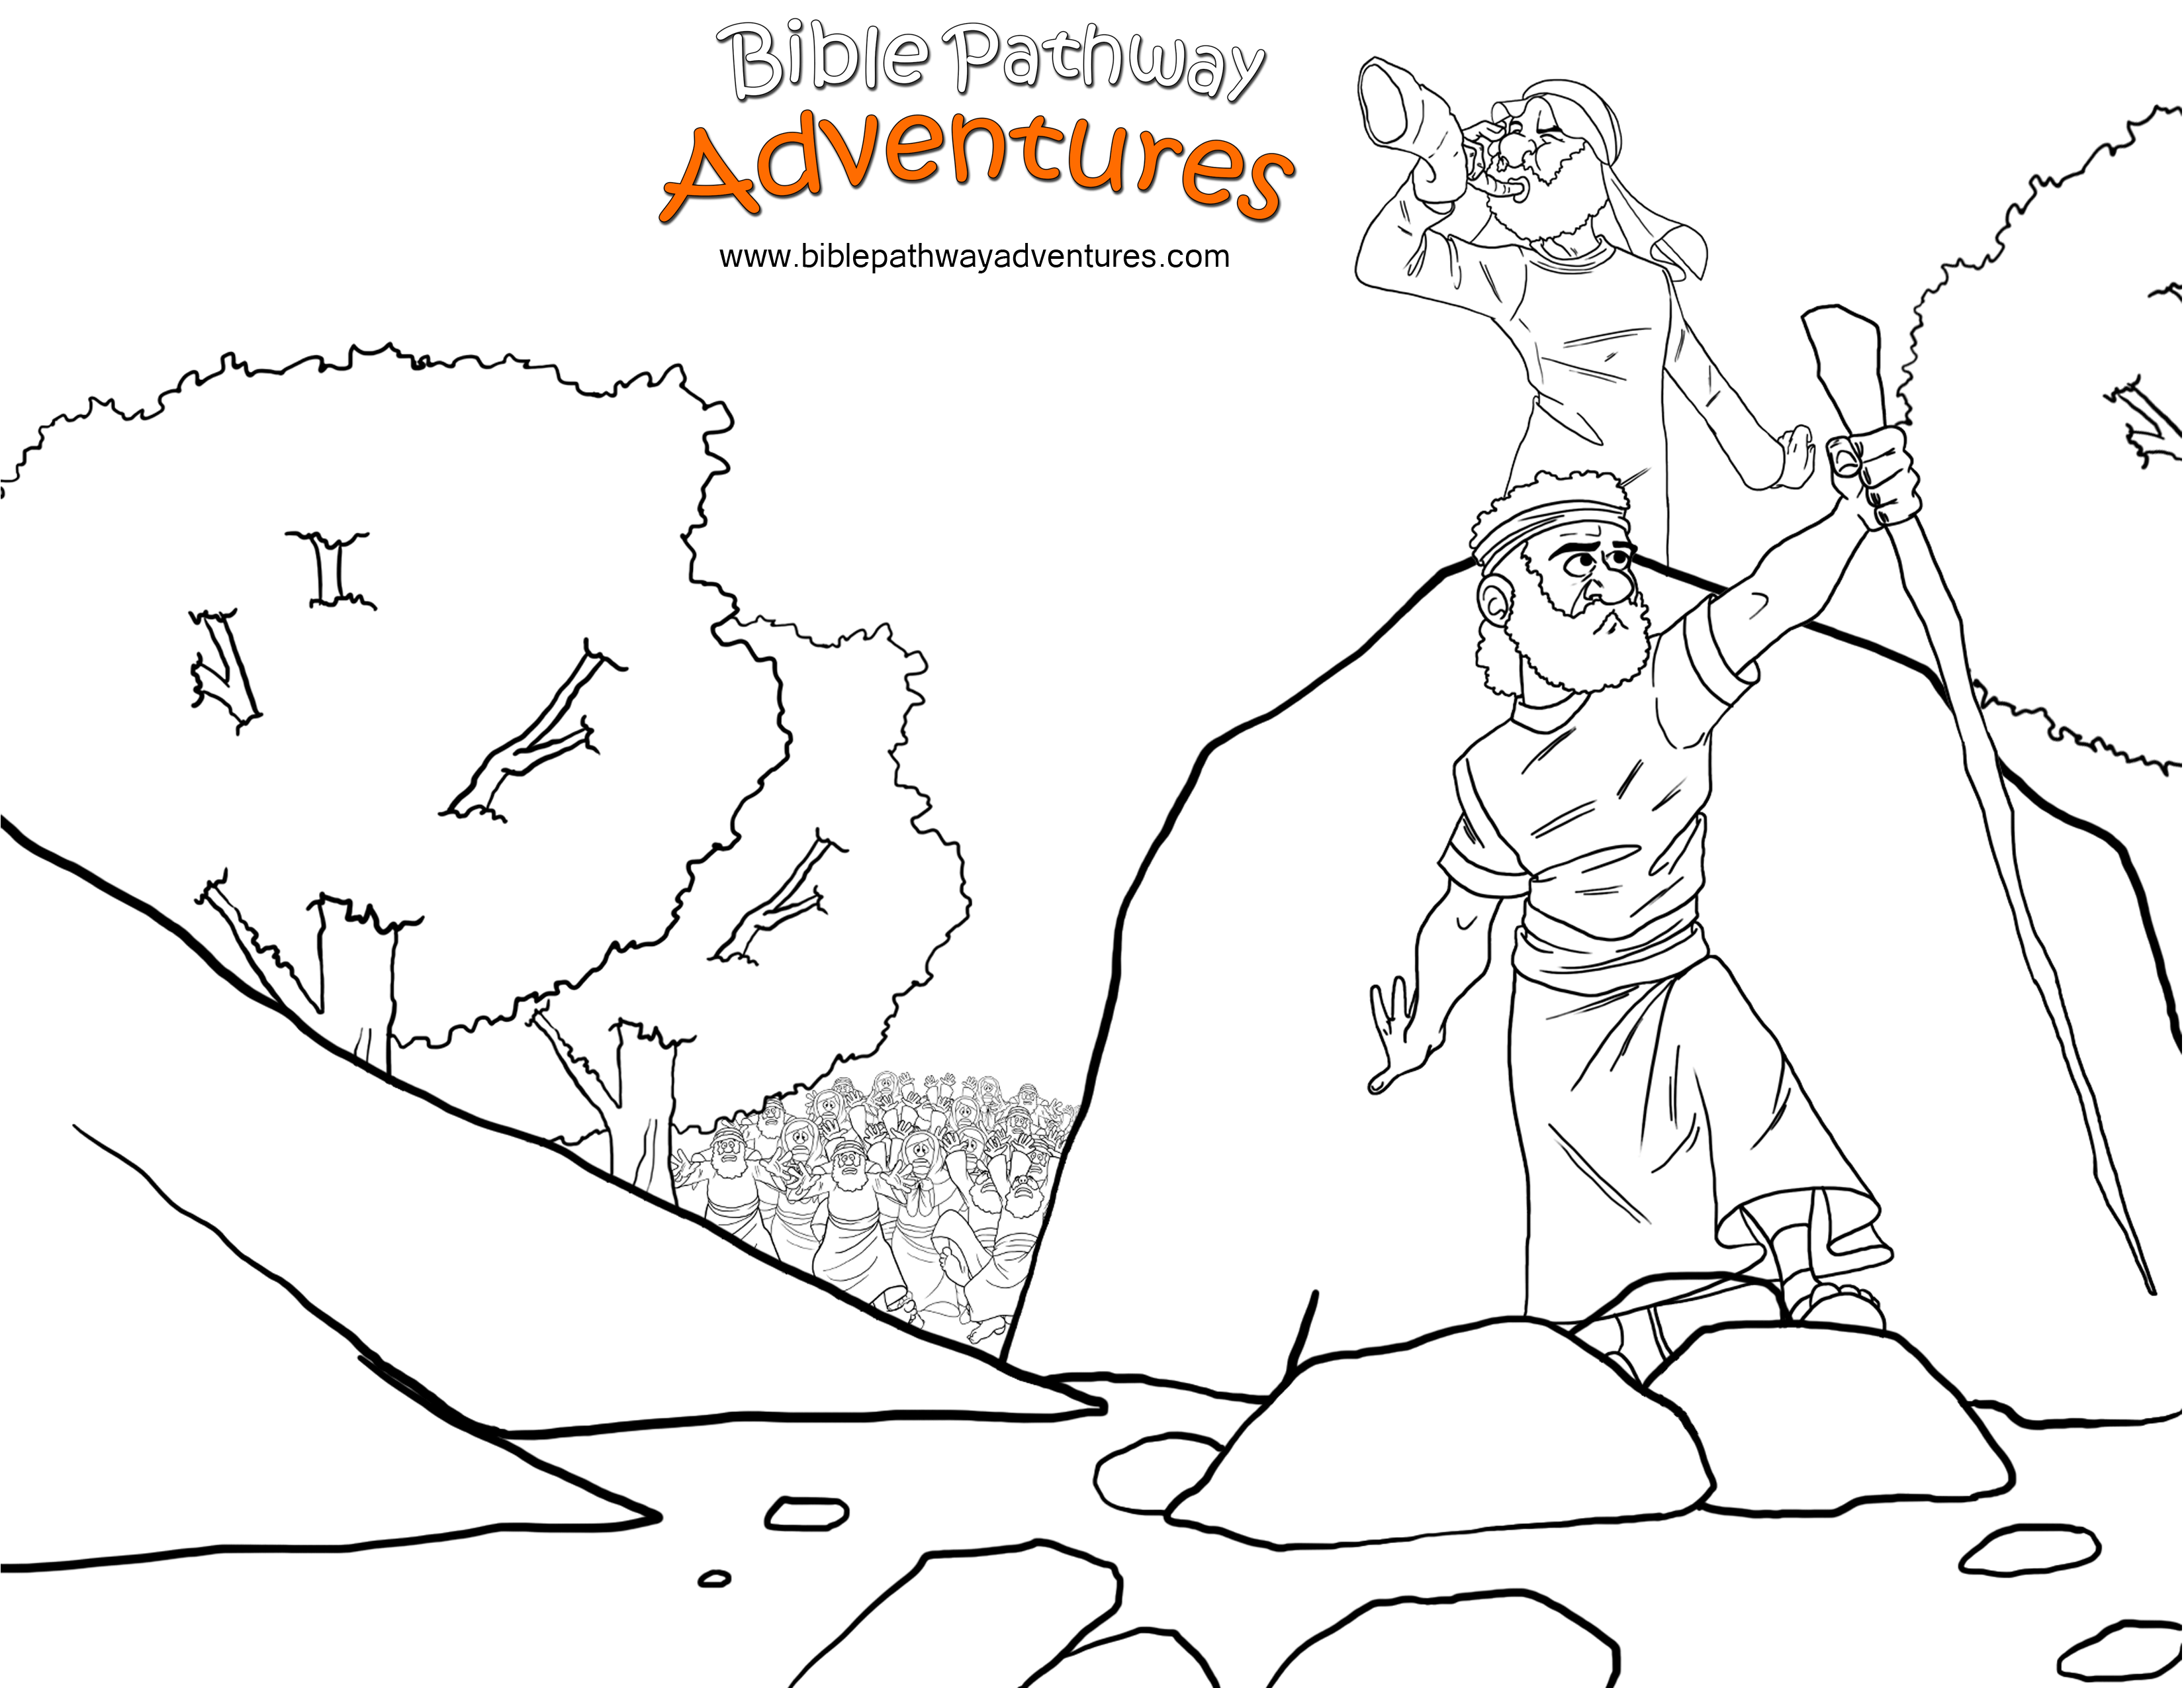 To The Promised Land Sunday School Coloring Pages Bible Lessons Joshua Preschool Bible Activities